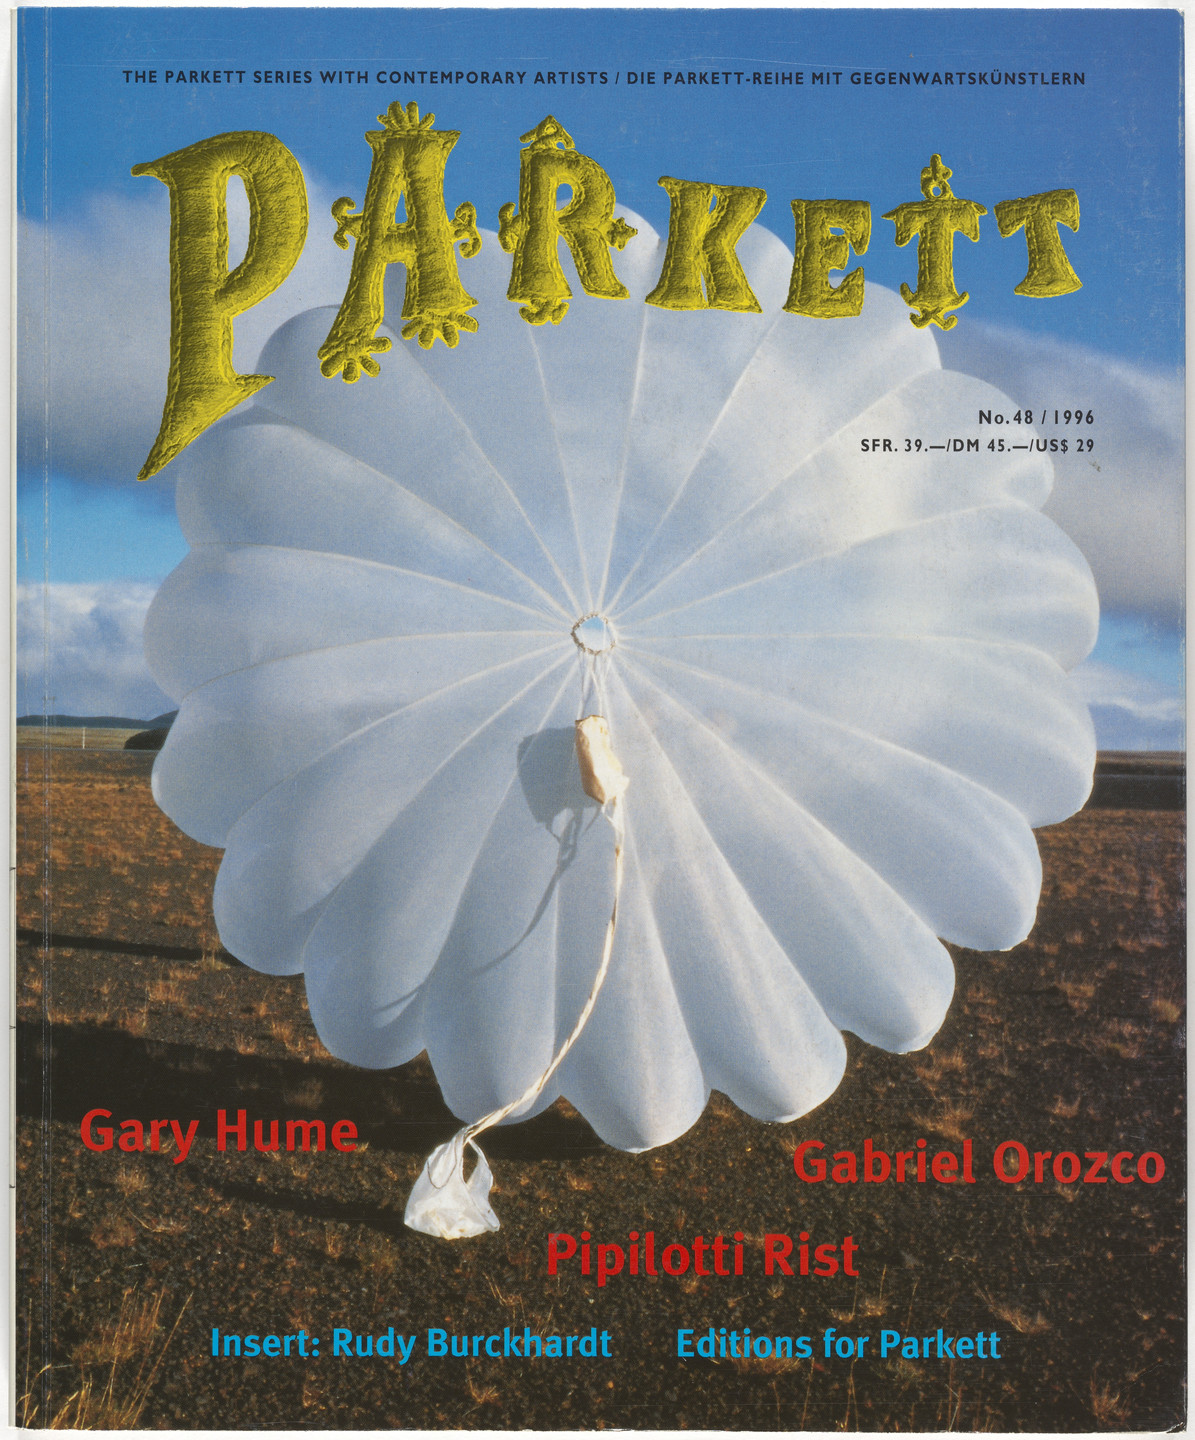 Gary Hume, Gabriel Orozco, Pipilotti Rist, Rudy Burckhardt, Various Artists. Parkett no. 48. 1996